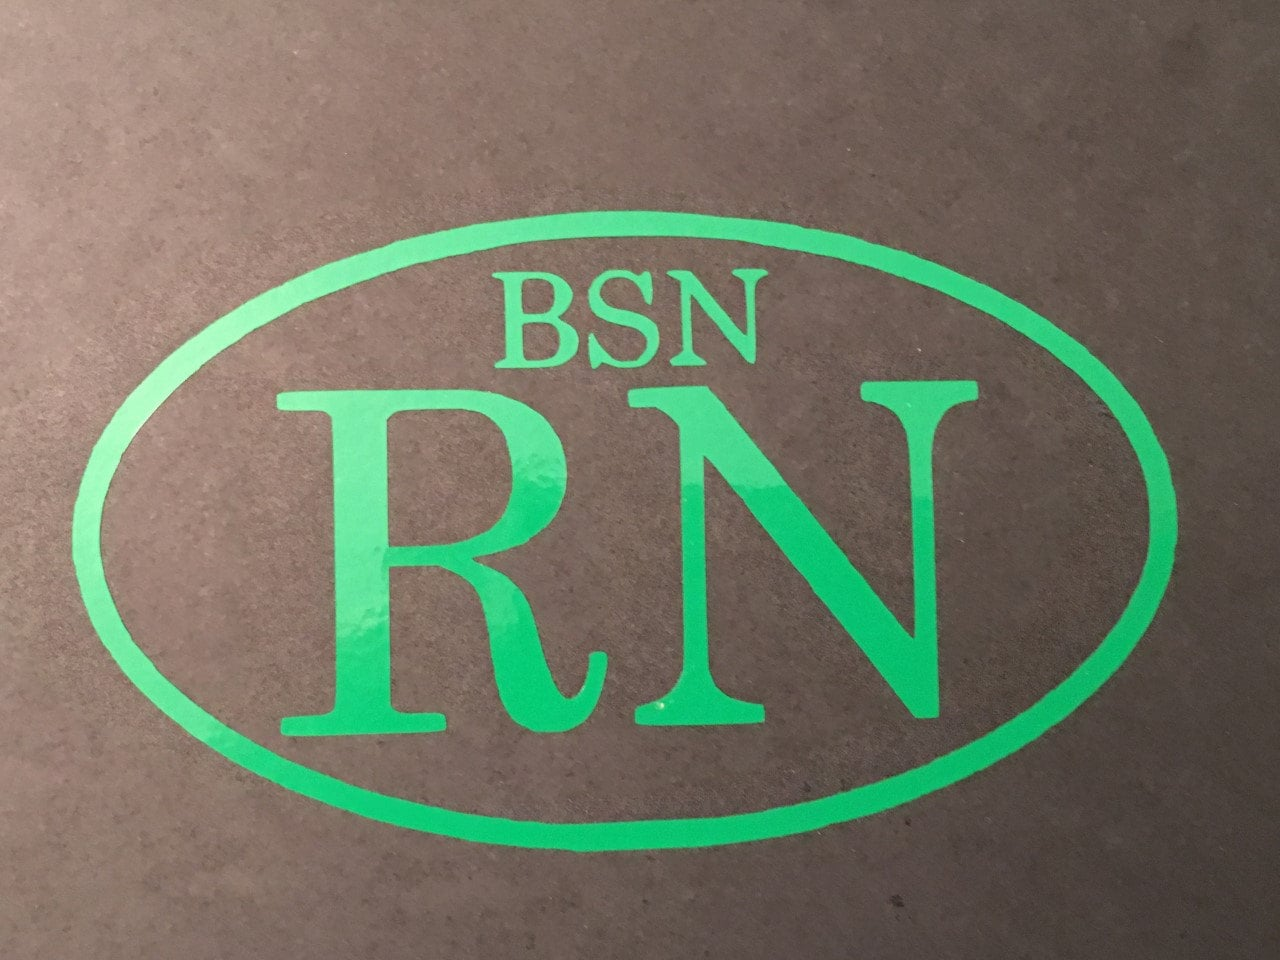 bsn nurse The bachelor of science in nursing (bsn) program is accredited by the virginia  state board of nursing and the commission on collegiate nursing education.